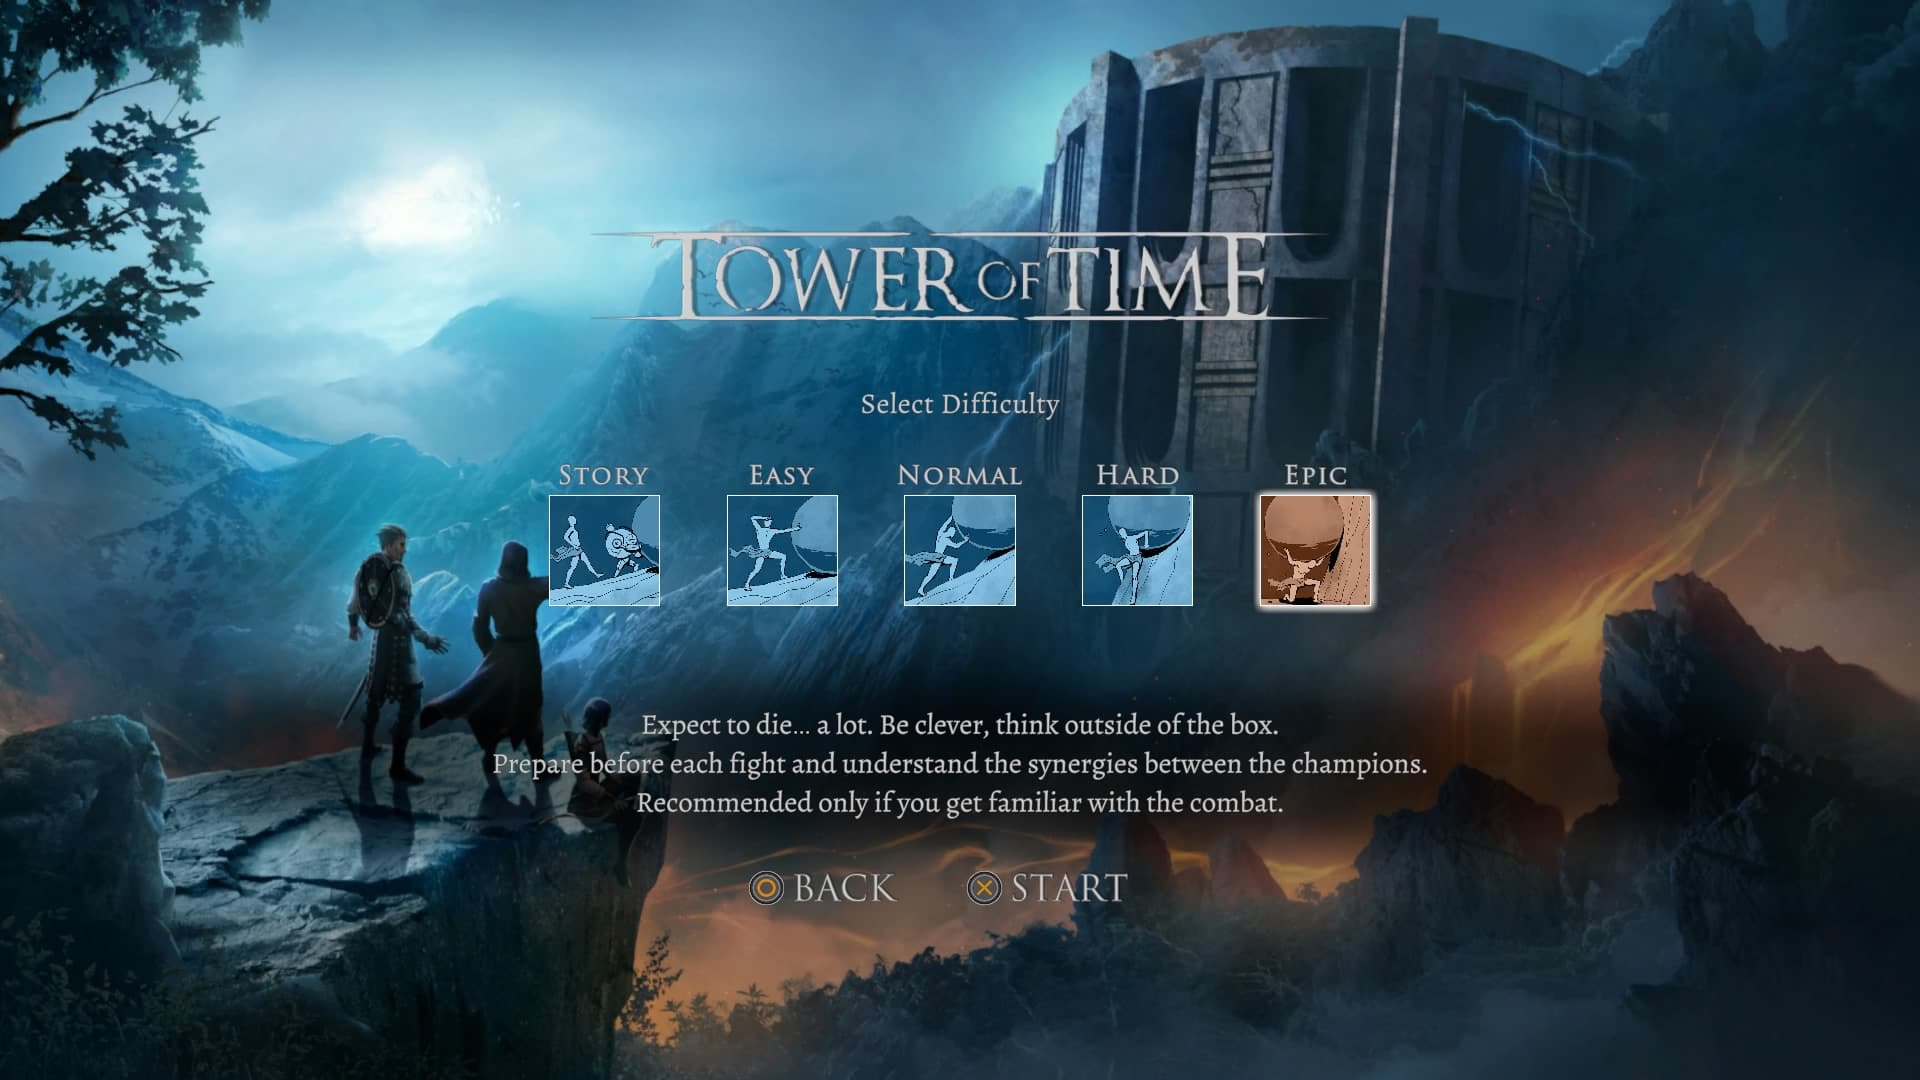 Tower of Time, Recensione Tower of Time, Difficoltà Tower of Time, GDR PS4, RTS PlayStation 4